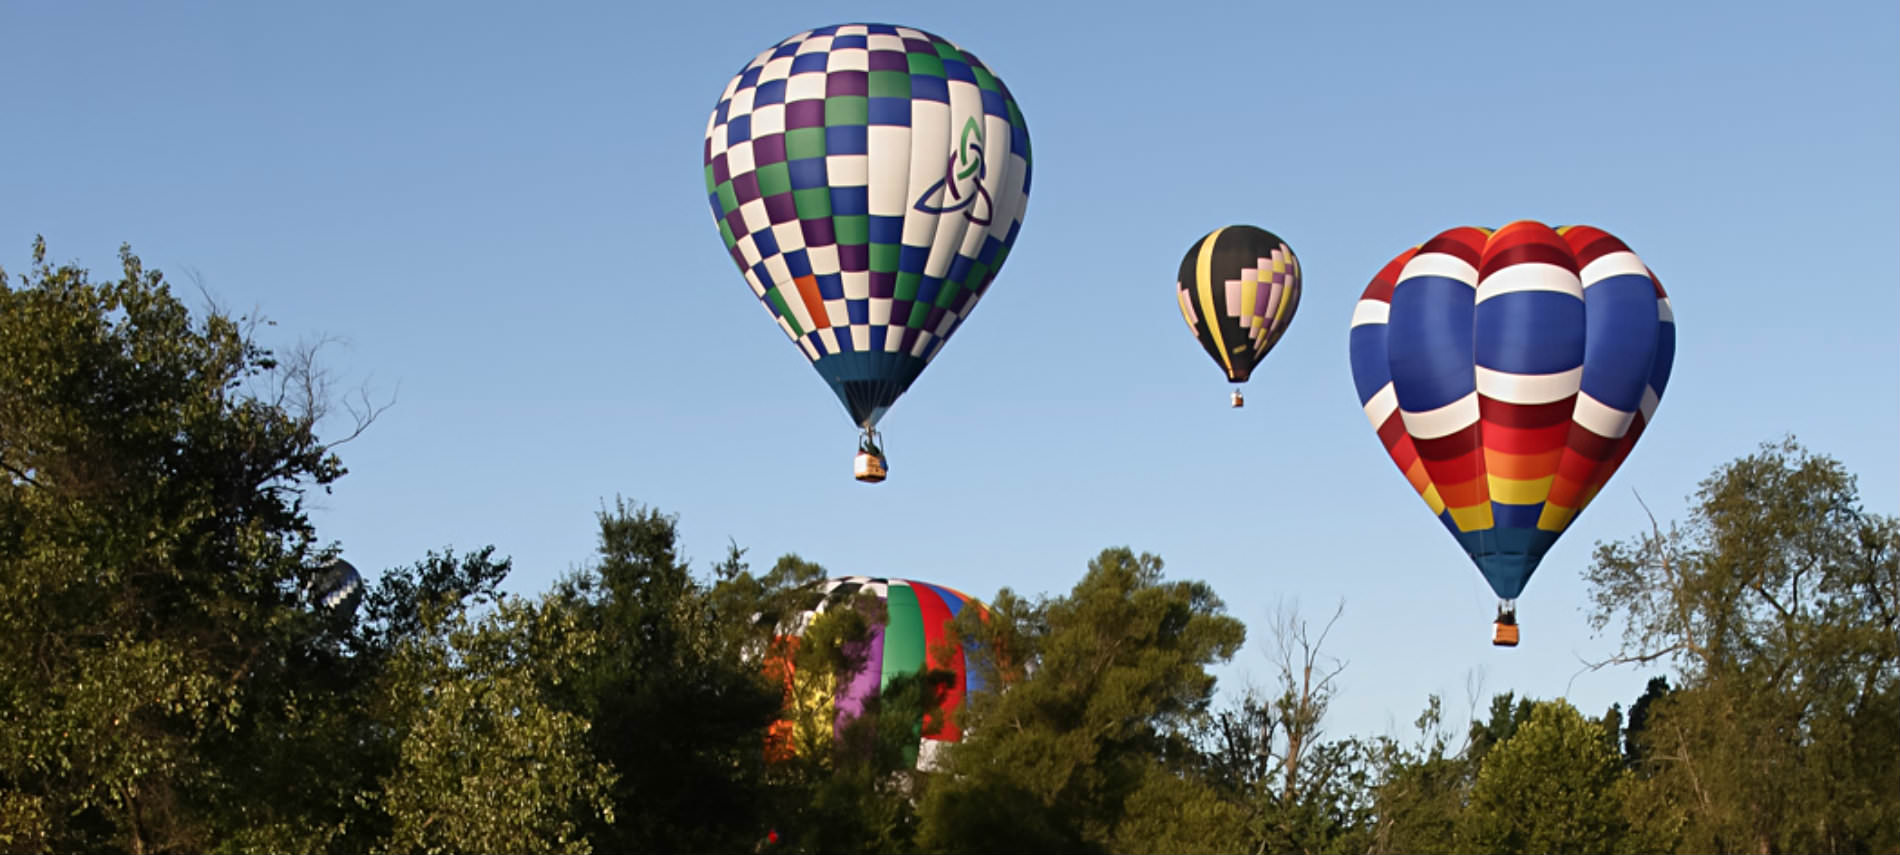 Multi-colored checkered and striped hot air ballons flying over tree, blue sky.